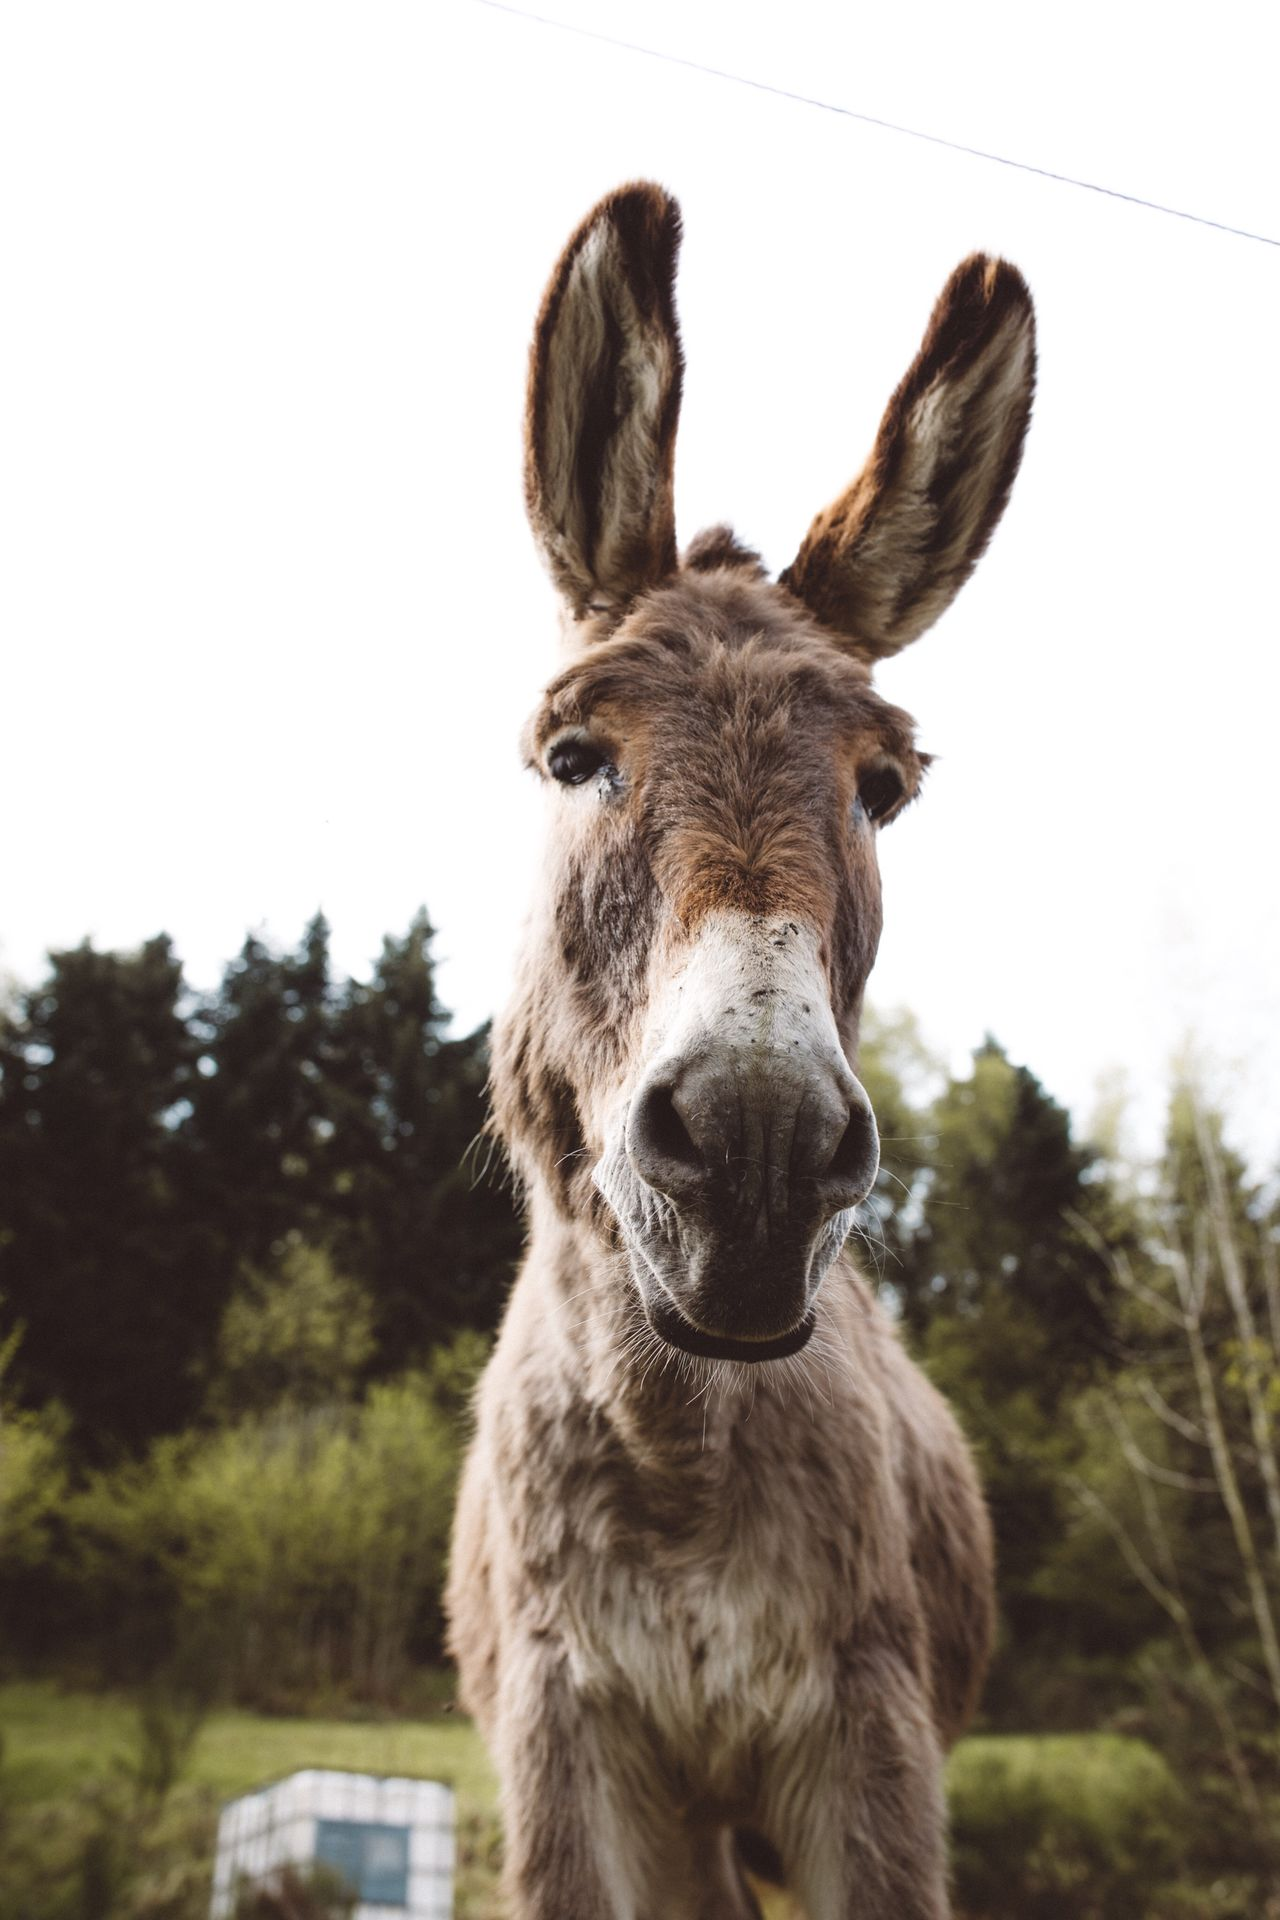 Donkey Animals In The Wild Animals Animal Cute Outdoors Outdoor Photography Exploring Explore Wildlife EyeEm Nature Lover Eye4photography  Nature Nature_collection Naturelovers